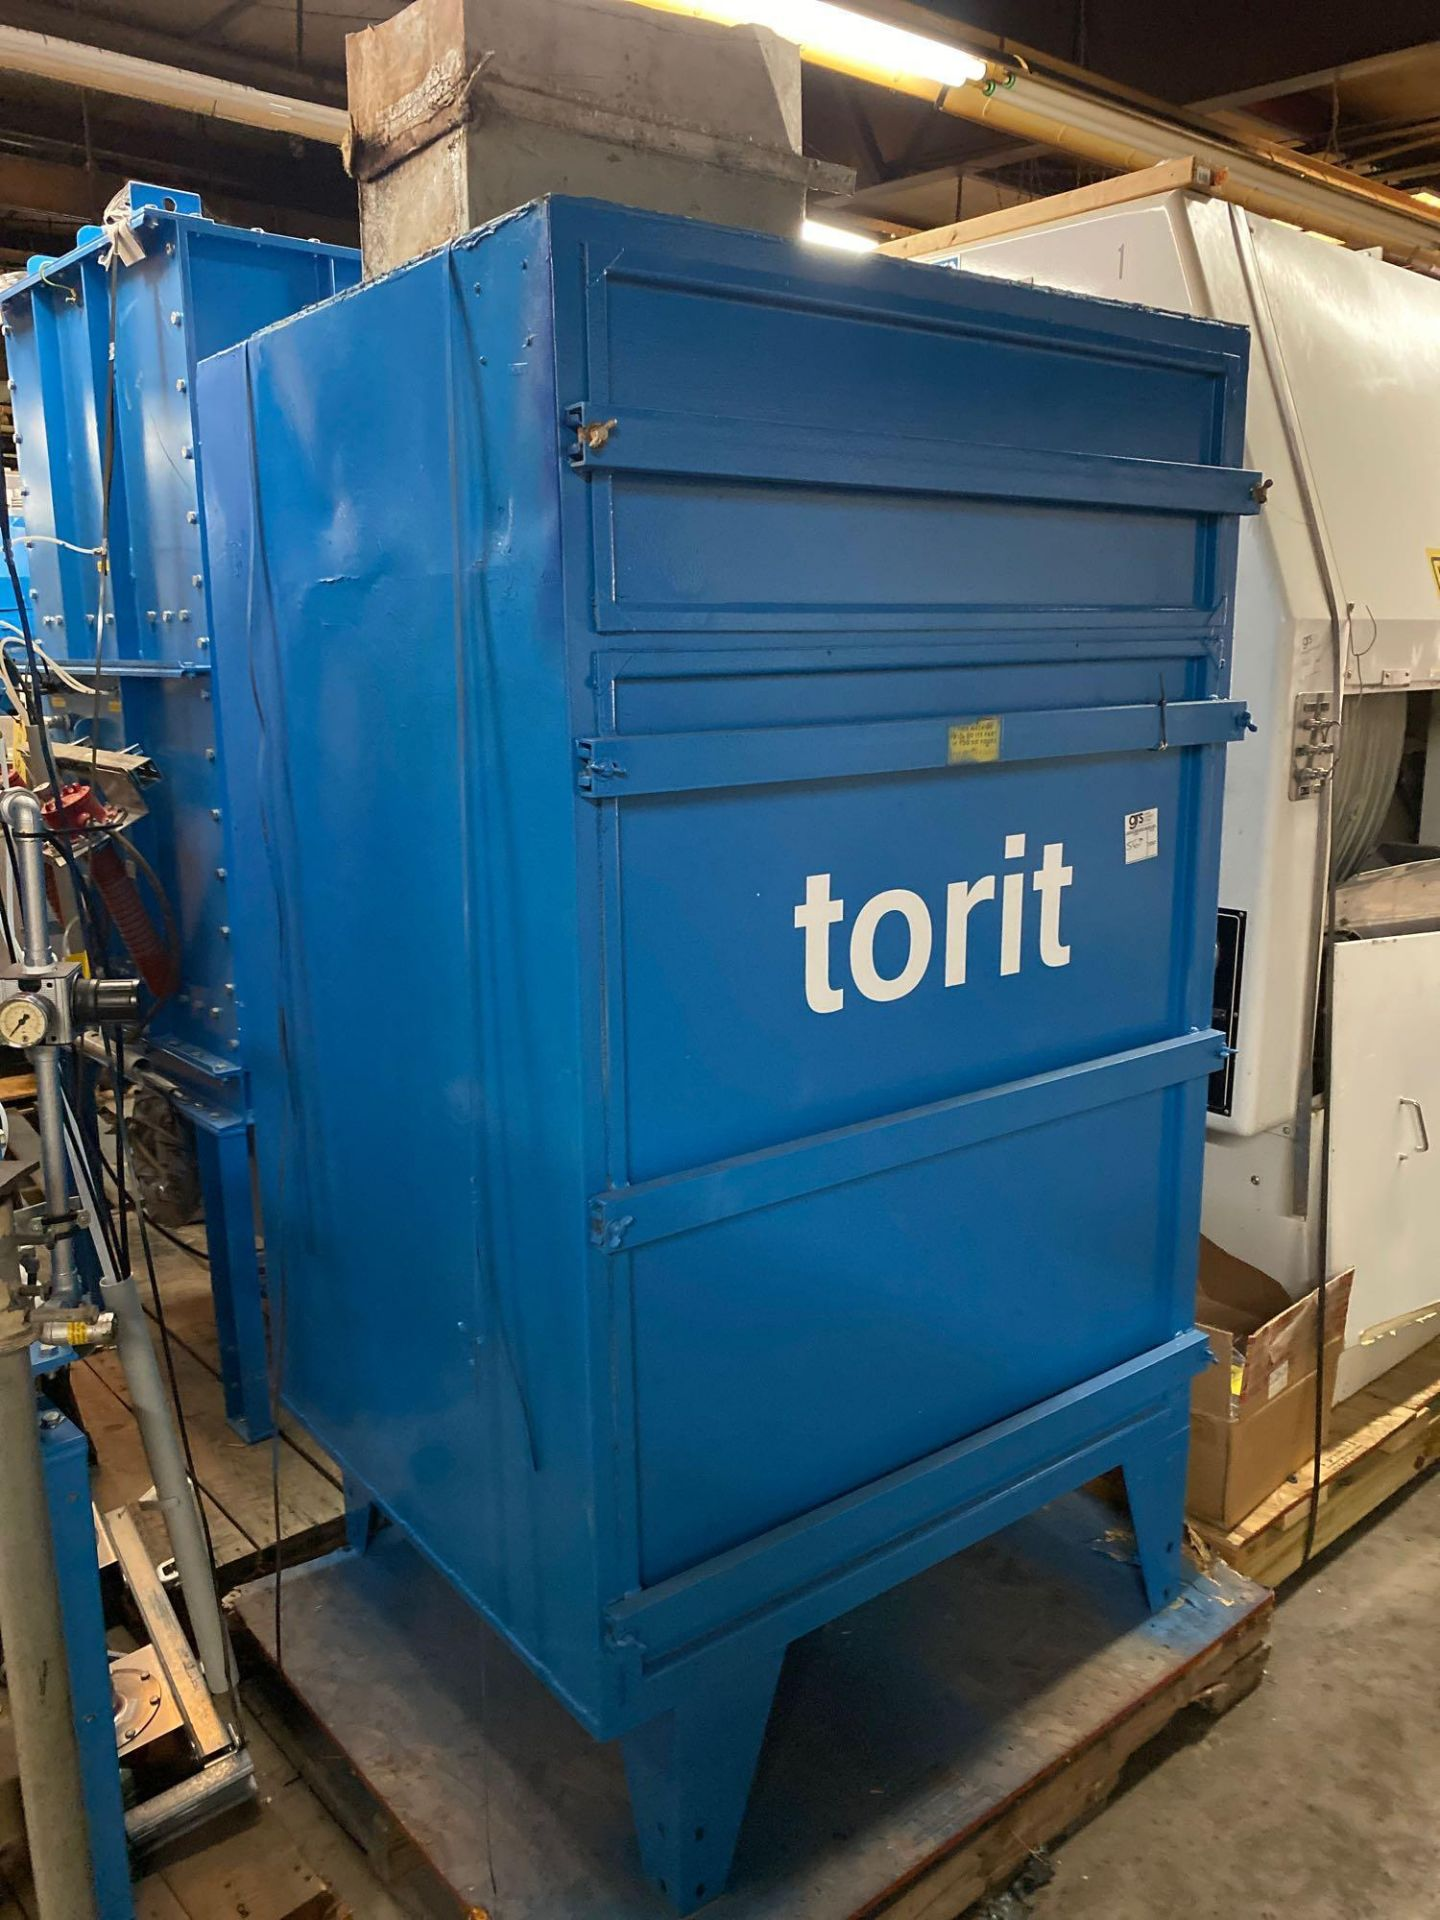 Torit Dust Collector Cabinet - Image 4 of 4